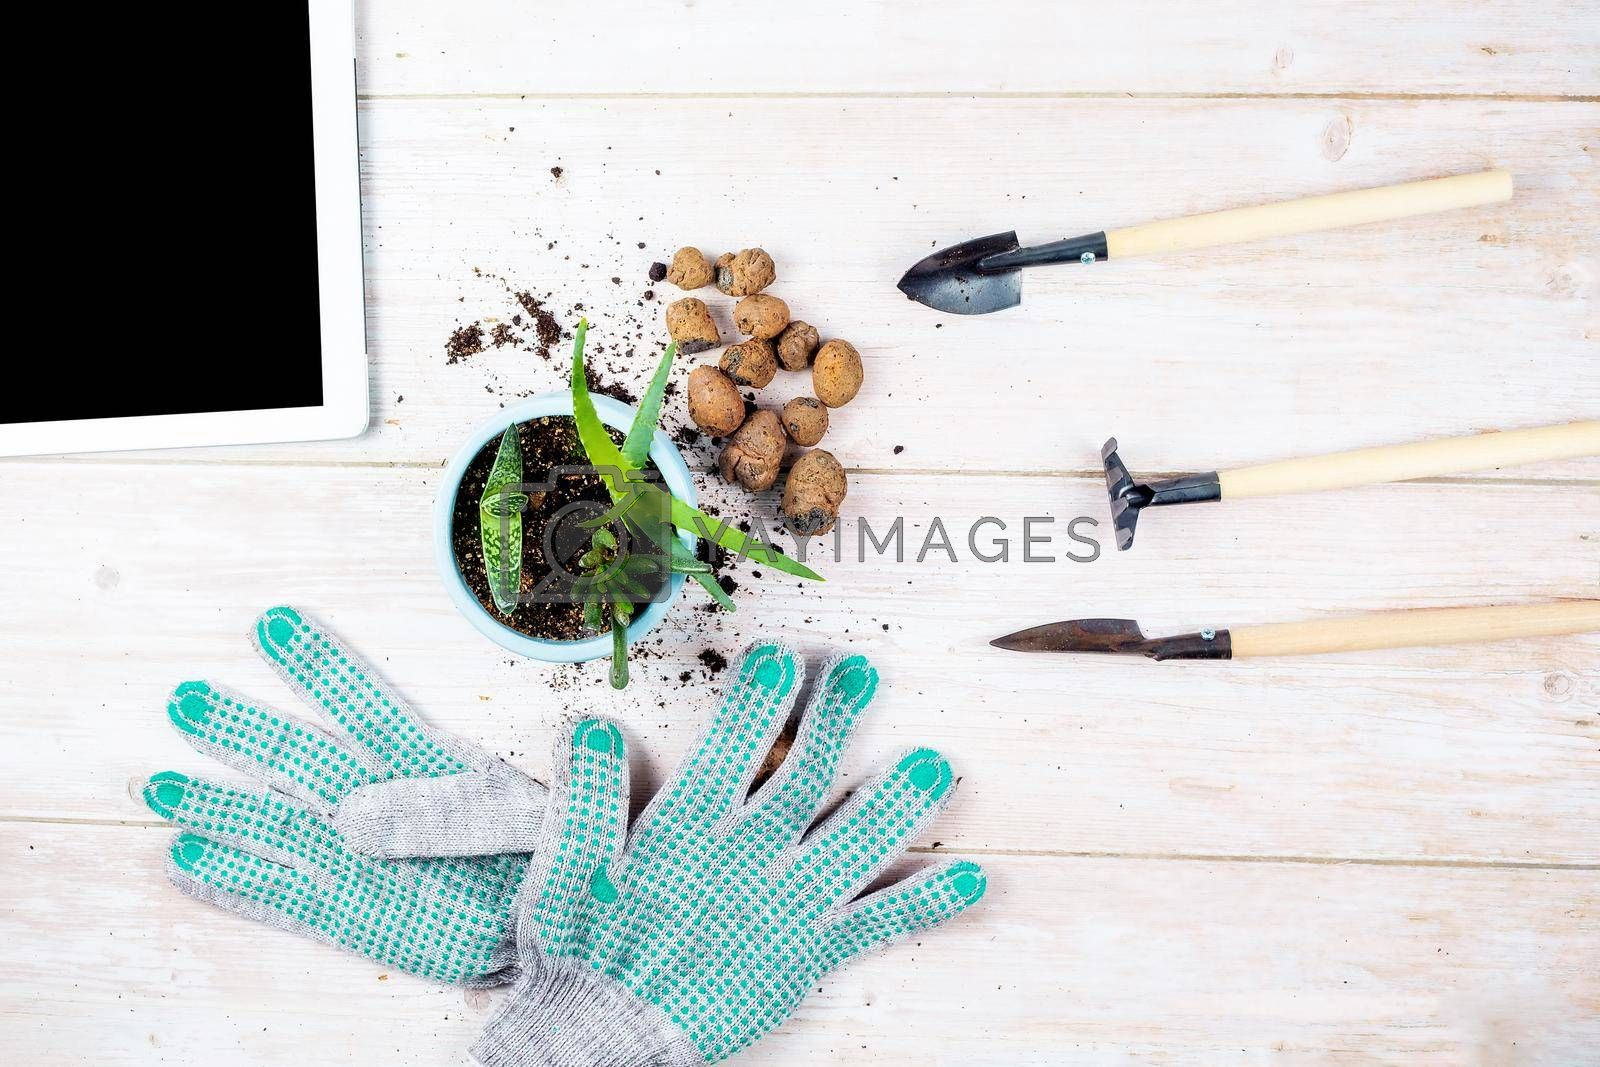 A green plant for replanting, a flower pot, expanded clay, gardening tools and gloves are laid out on a wooden table. the concept of online learning home gardening.